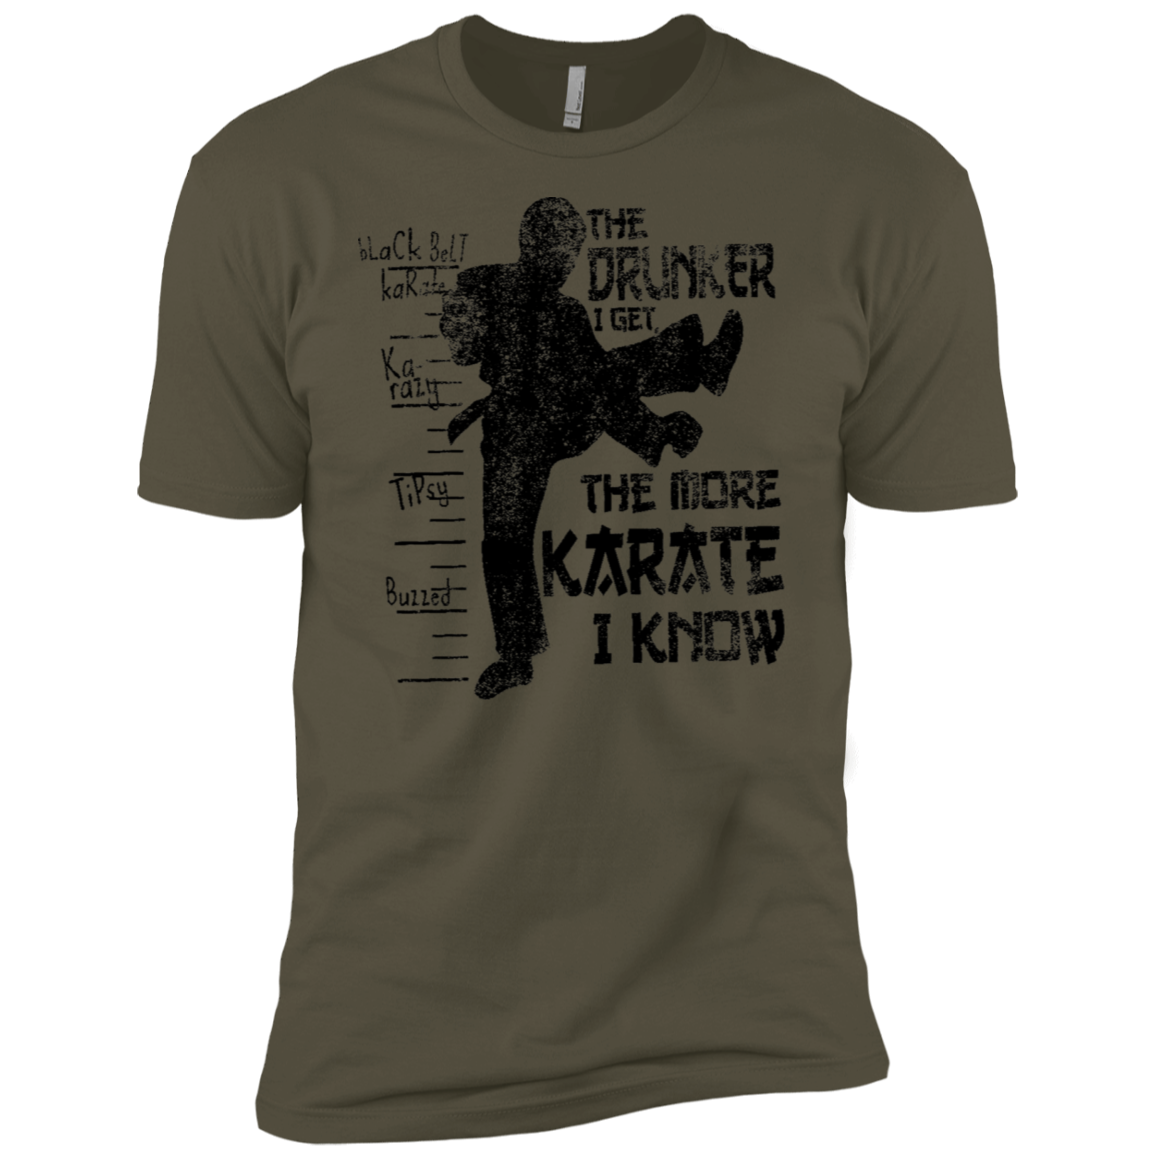 The Drunker I Get the more Karate I Know Men's Classic Tee